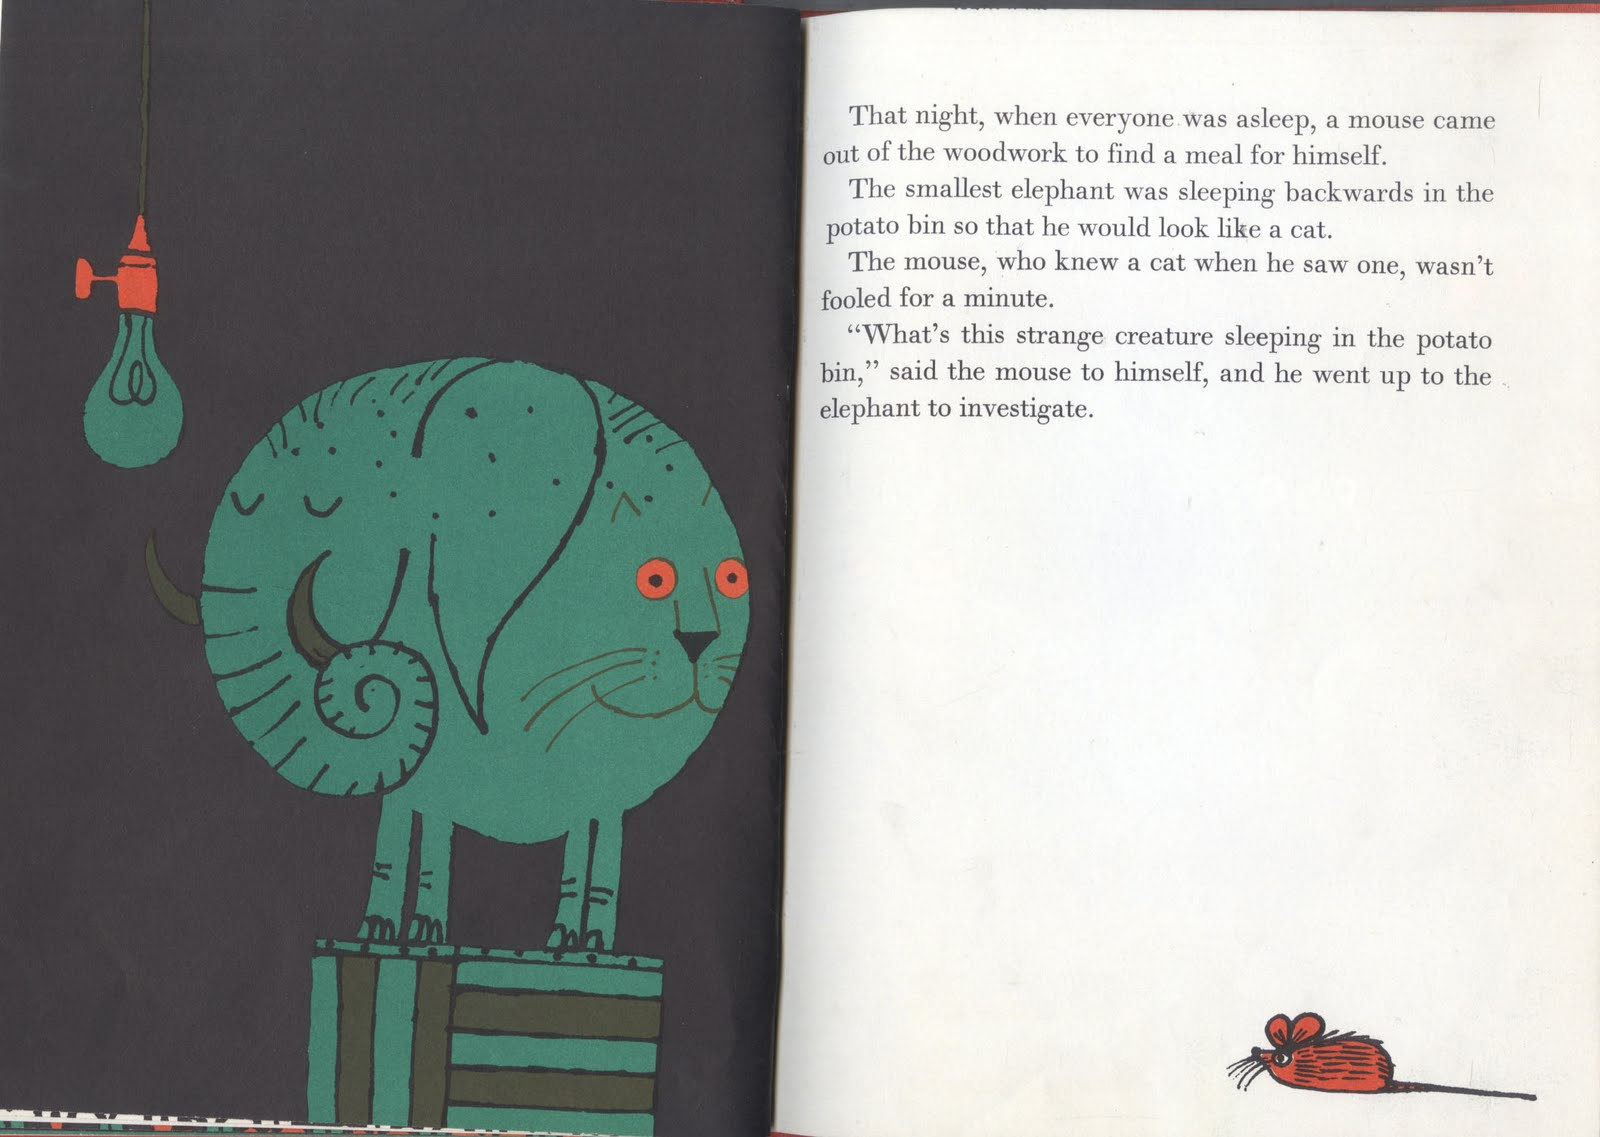 The Illustrated Book Image Collective: The Smallest Elephant in the